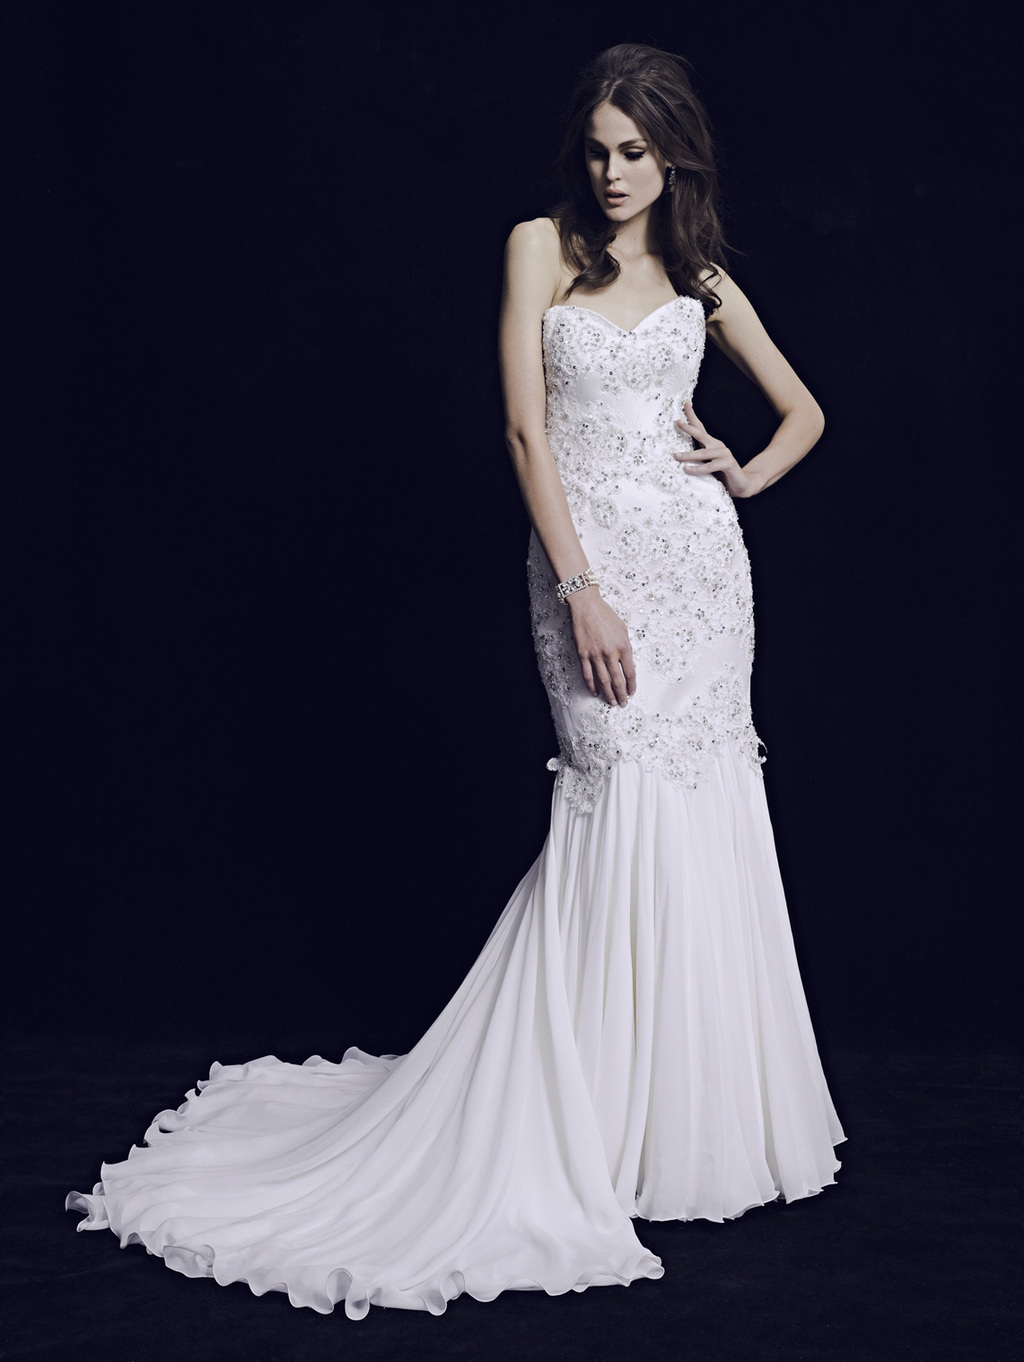 Mariana-hardwick-wedding-dress-2013-bridal-3.full